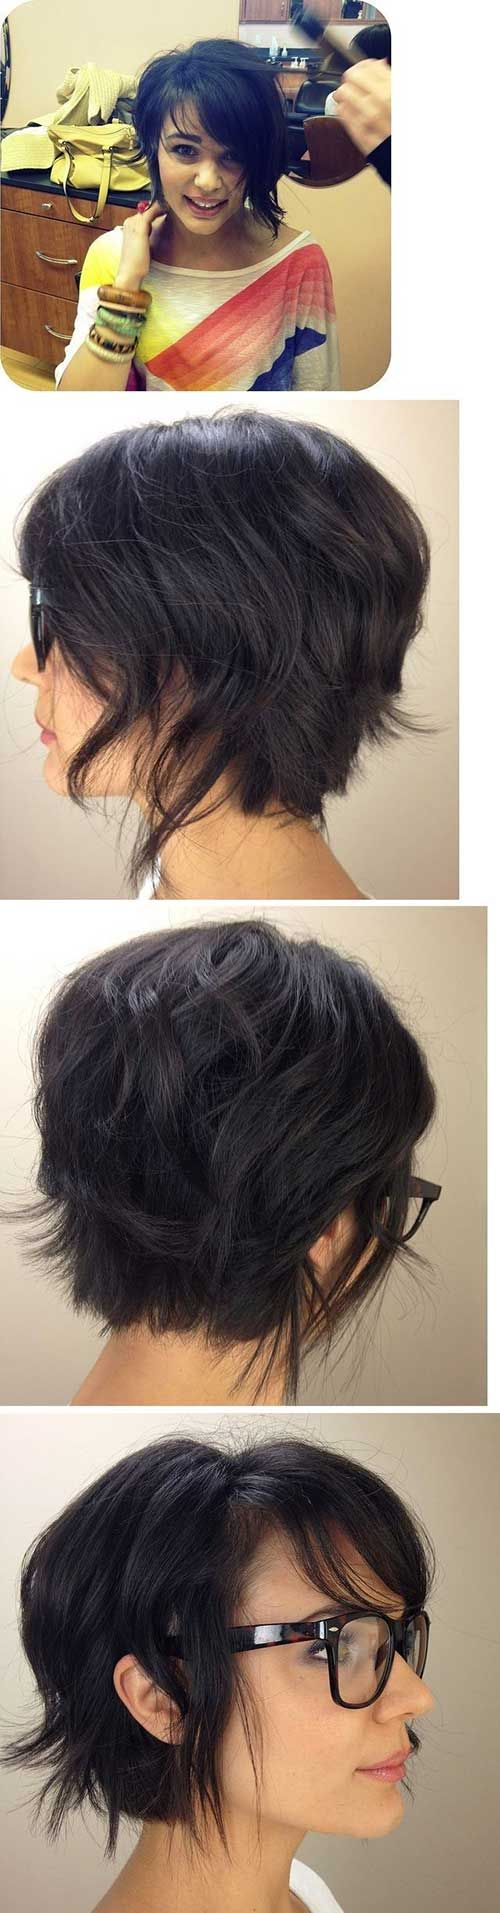 Pixie Short Hair Styles Back Pictures: